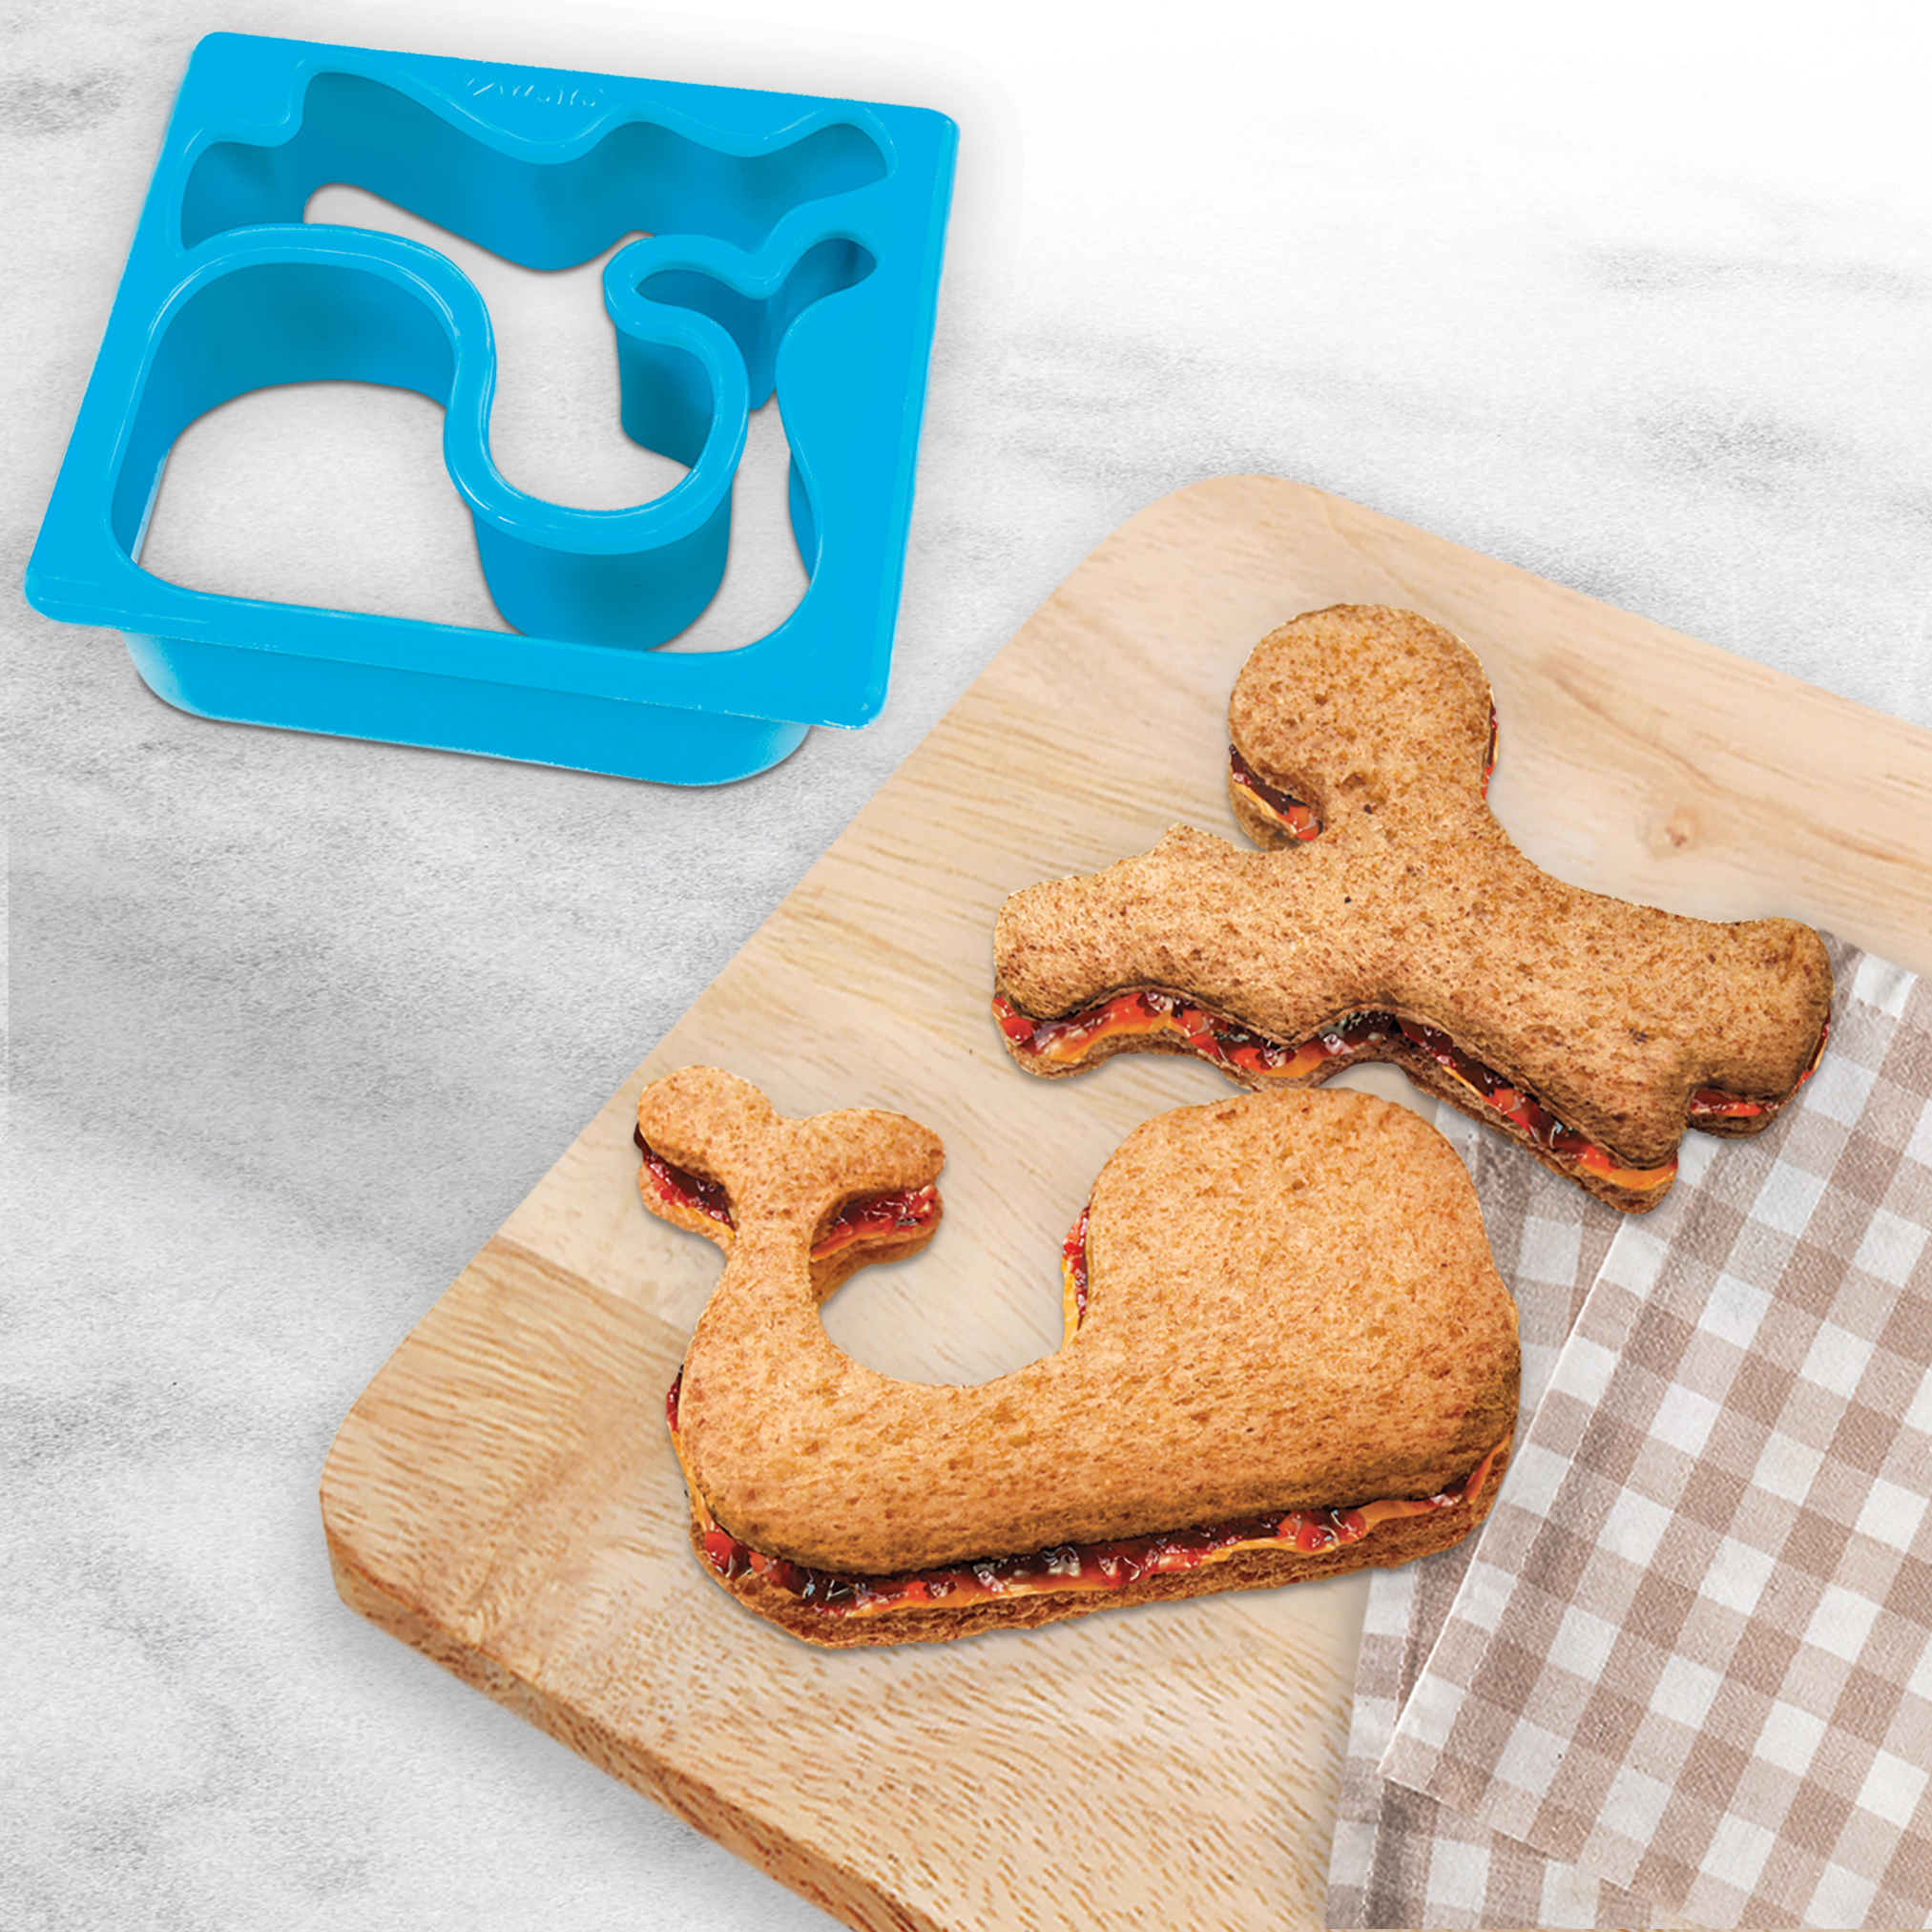 Tovolo Whale /& Octopus Sandwich Shaper Dishwasher Safe Kid-Friendly